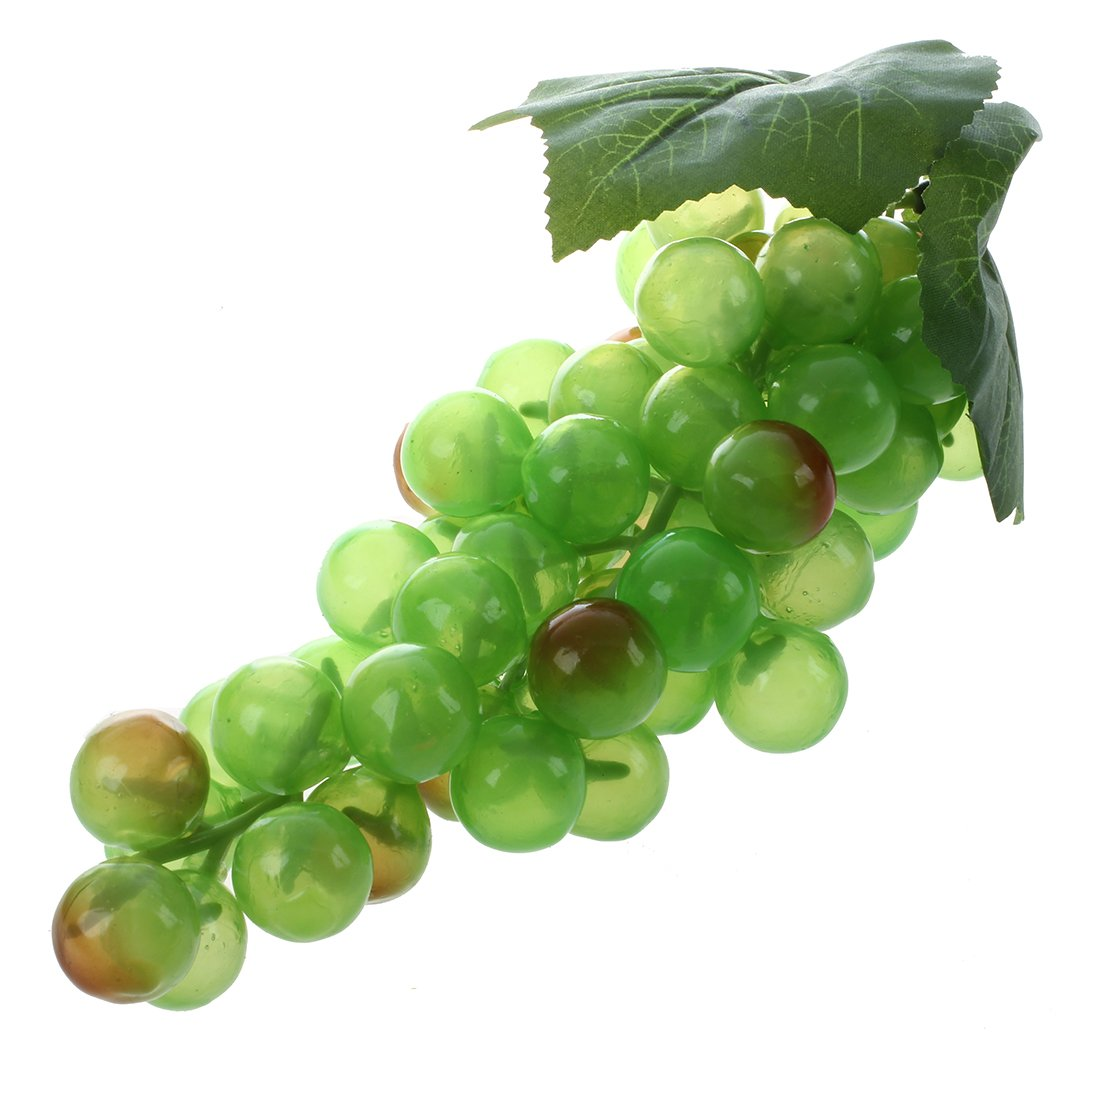 SODIAL(R) 8' Fruit Raisin Grappe Artificiel Deco DIY Maison Magasin Fete VERT TRTA11A